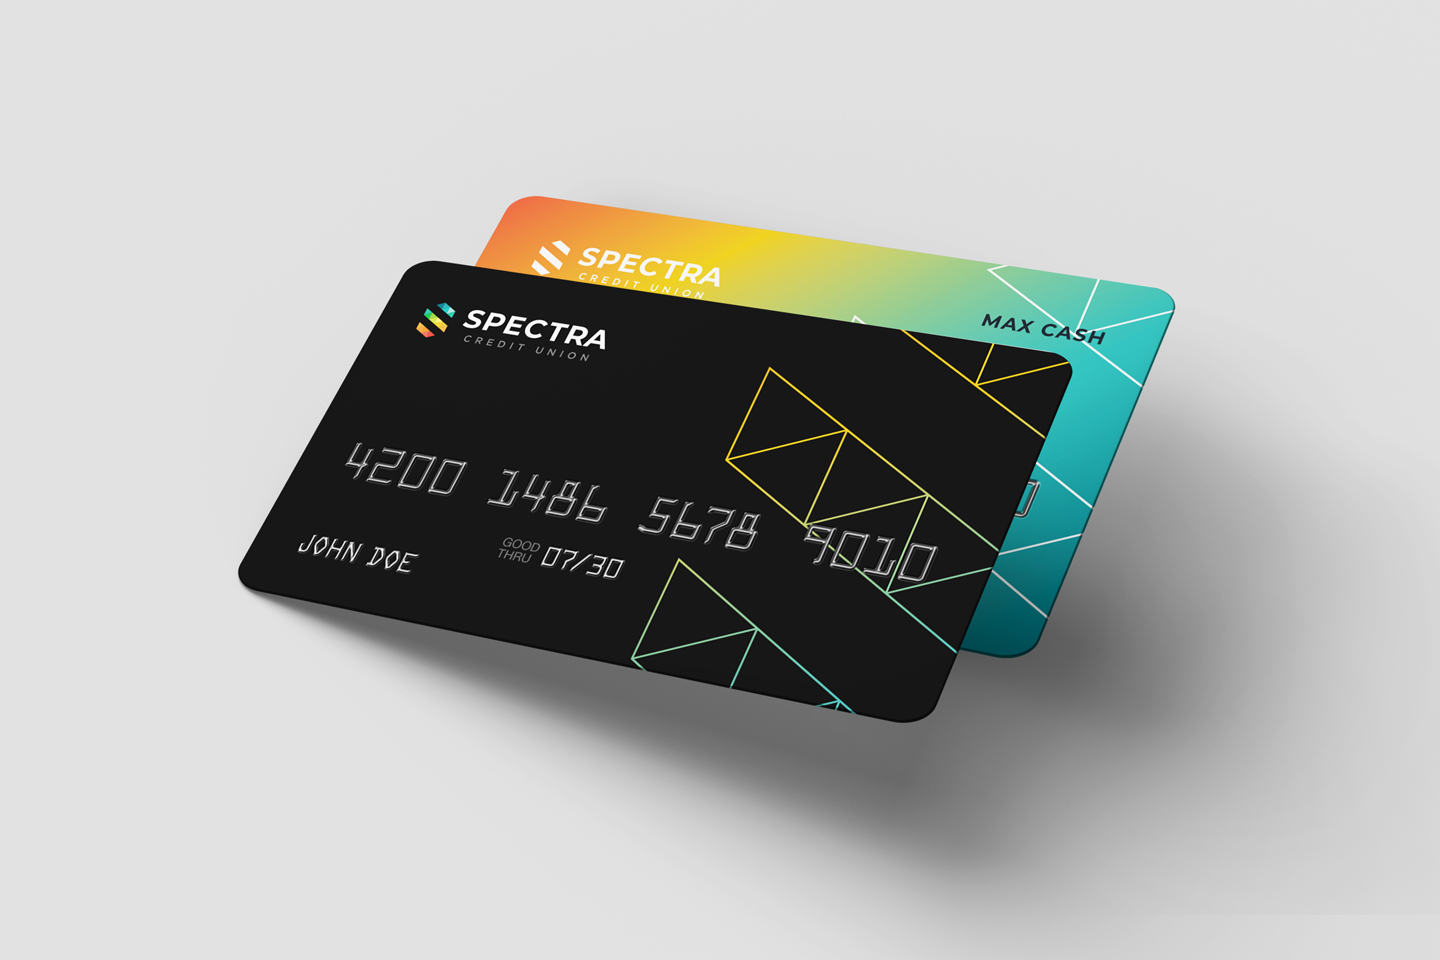 Sneak Peek of our new Debit and Credit Cards